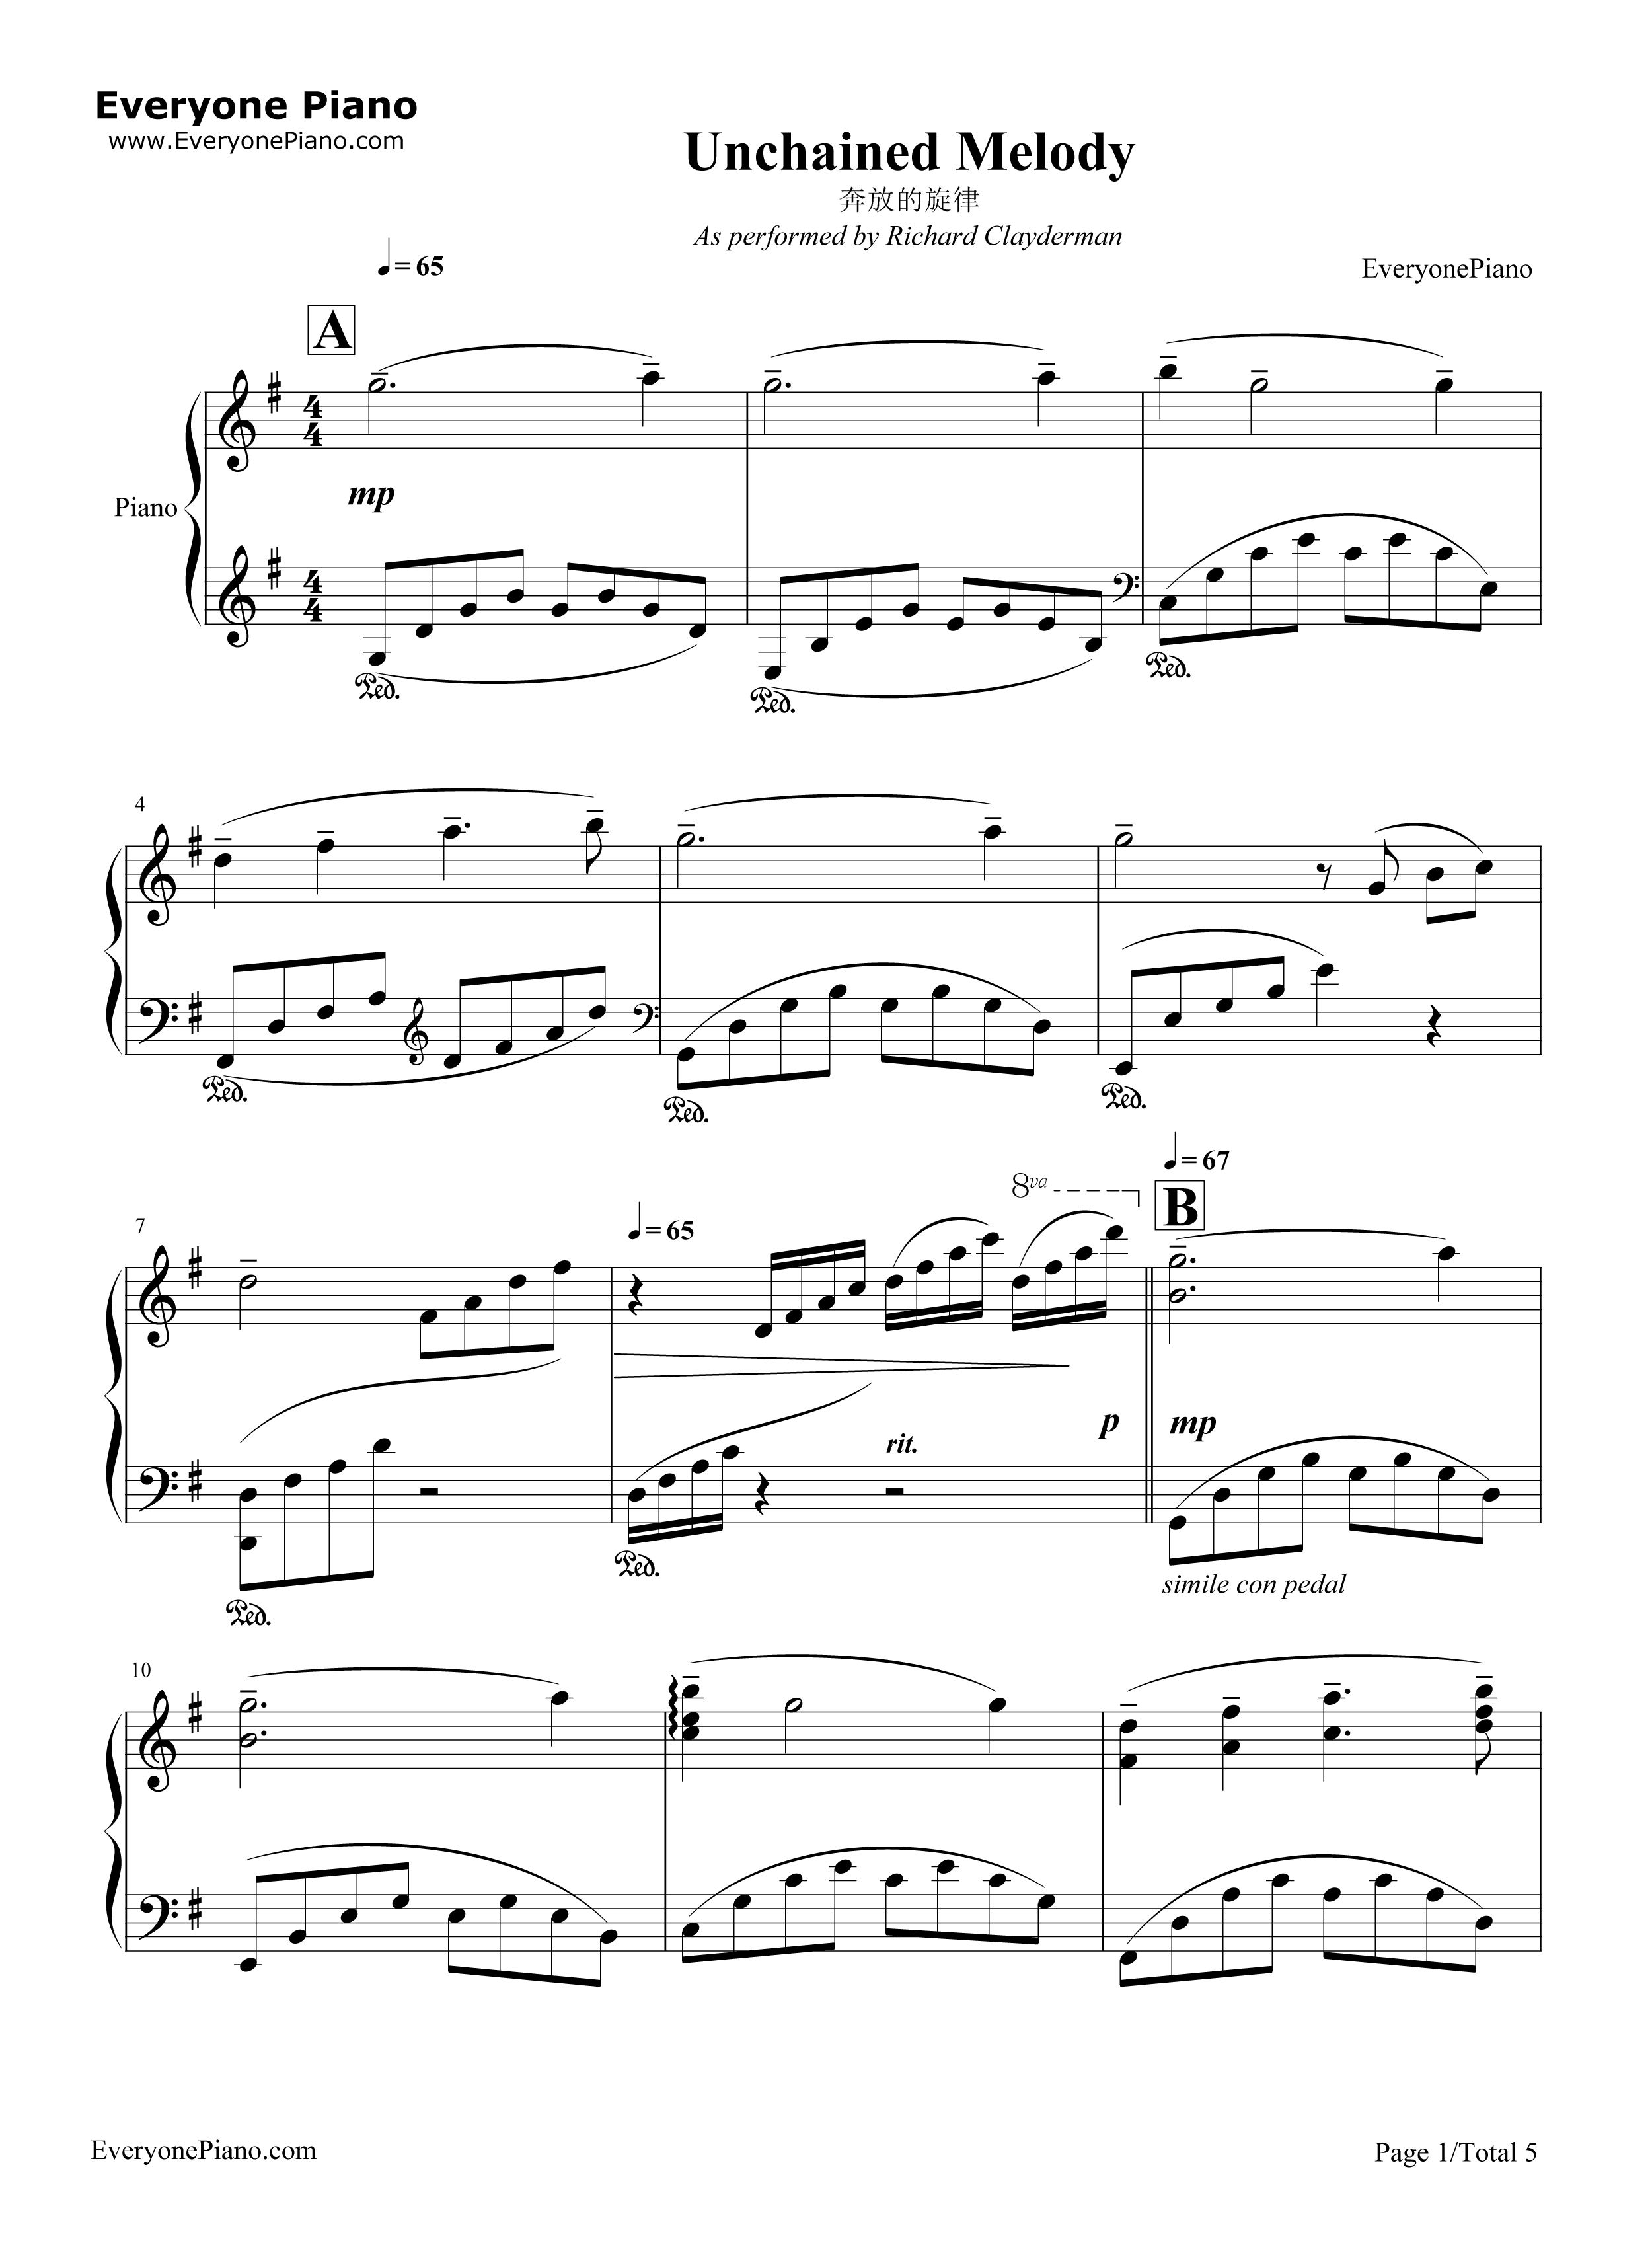 Unchained Melody Stave Preview 1-Free Piano Sheet Music u0026 Piano Chords